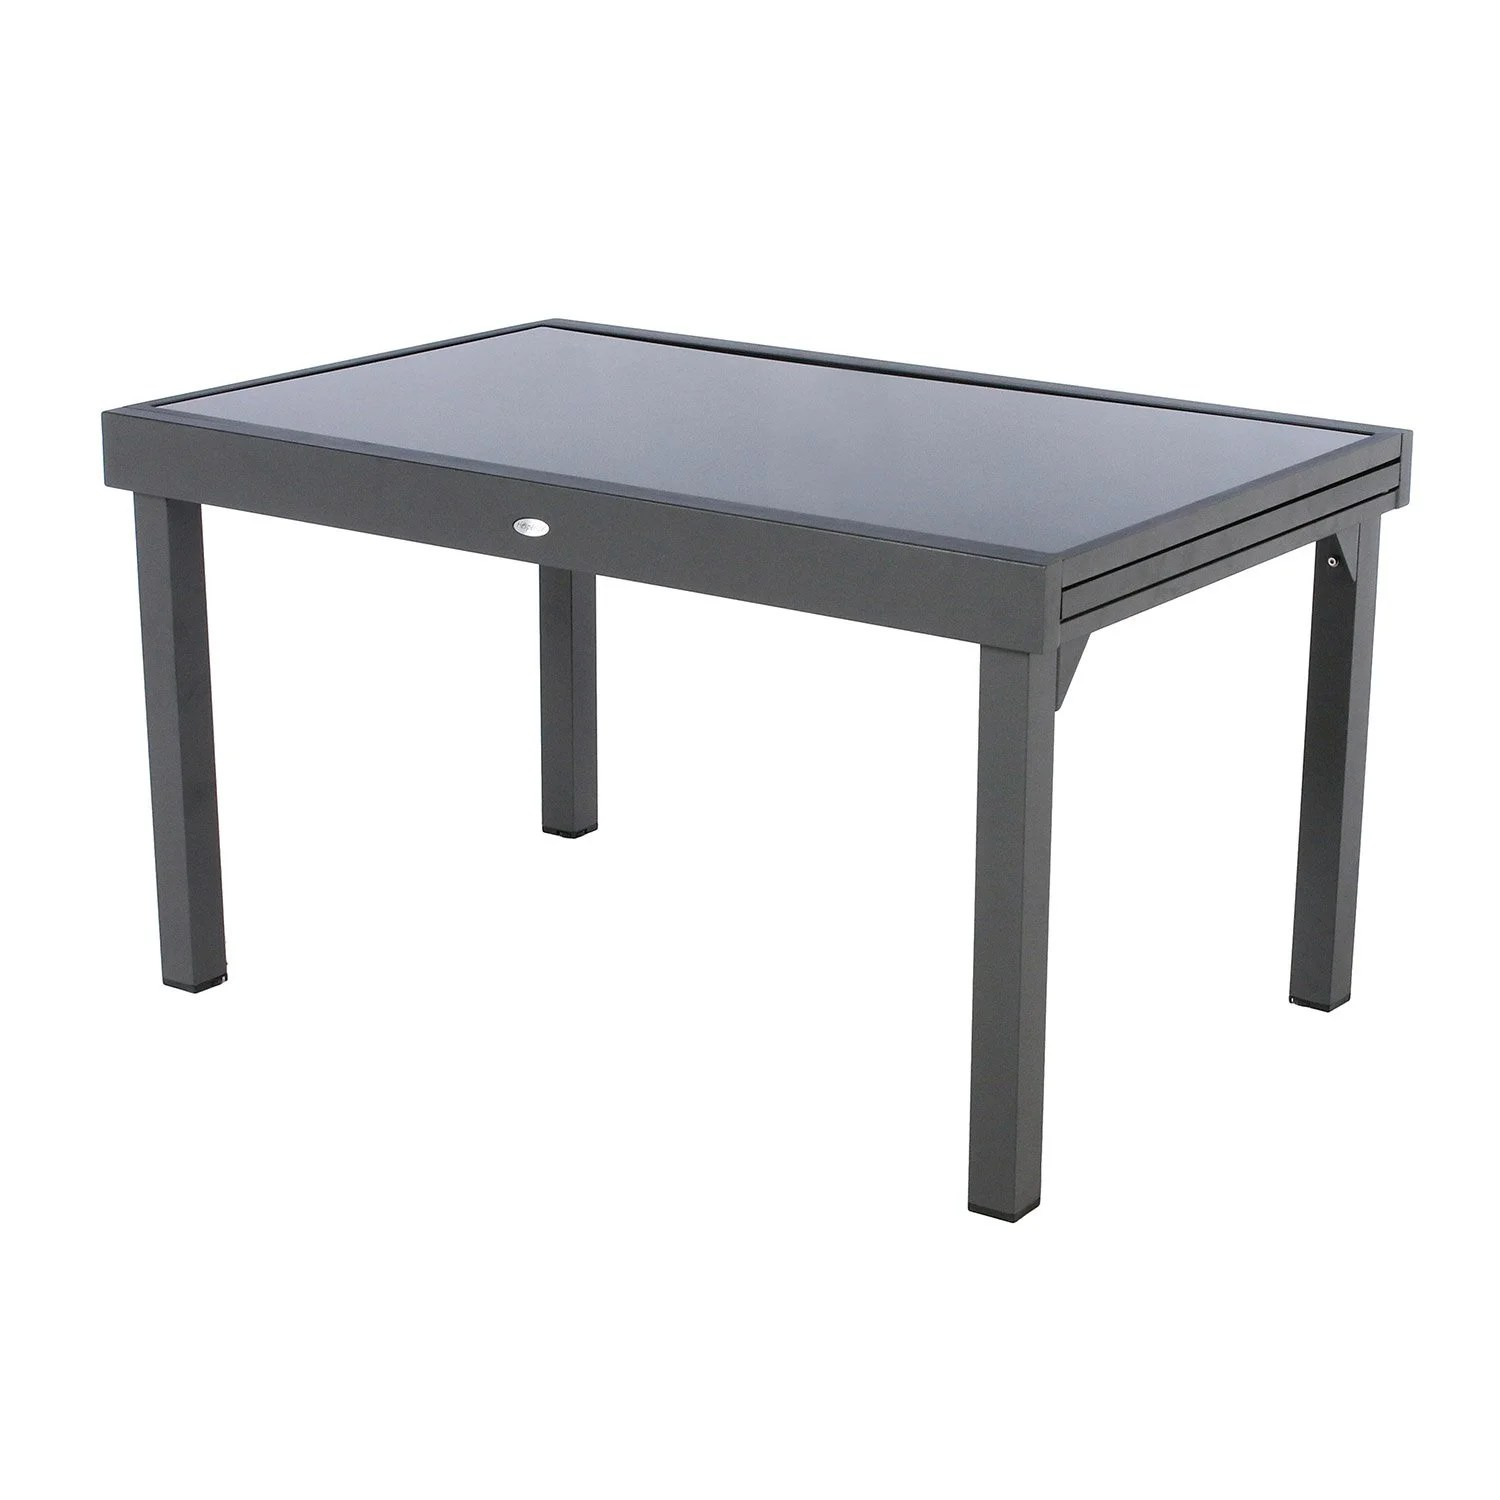 Housse De Protection Salon De Jardin Rectangulaire Table De Jardin Hesperide Piazza Rectangulaire Gris 12